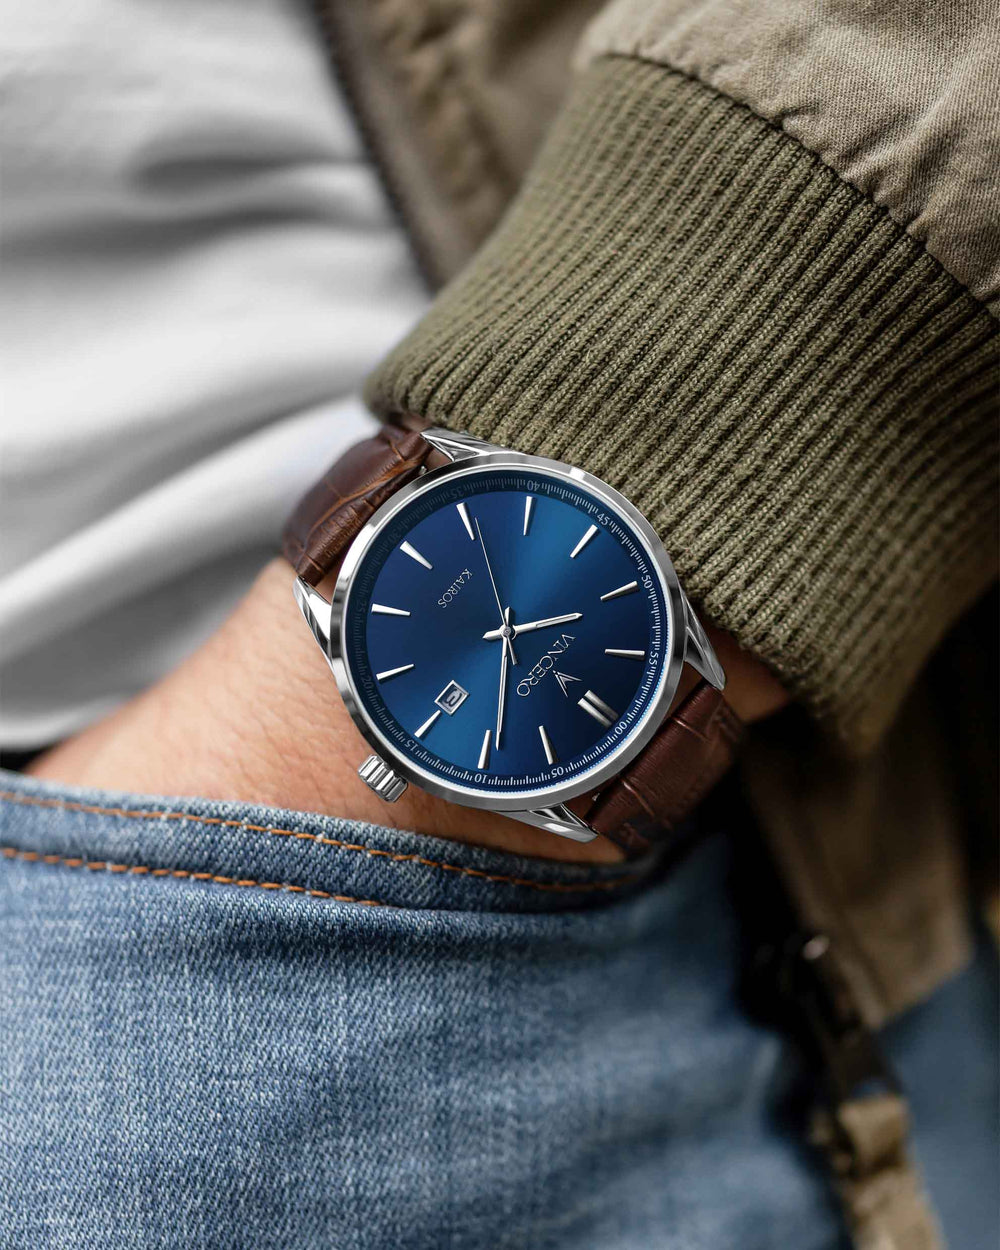 Luxury Kairos Watch Mocha Brown Croc Italian Leather Strap Band Blue Watch Face Silver Case Clasp